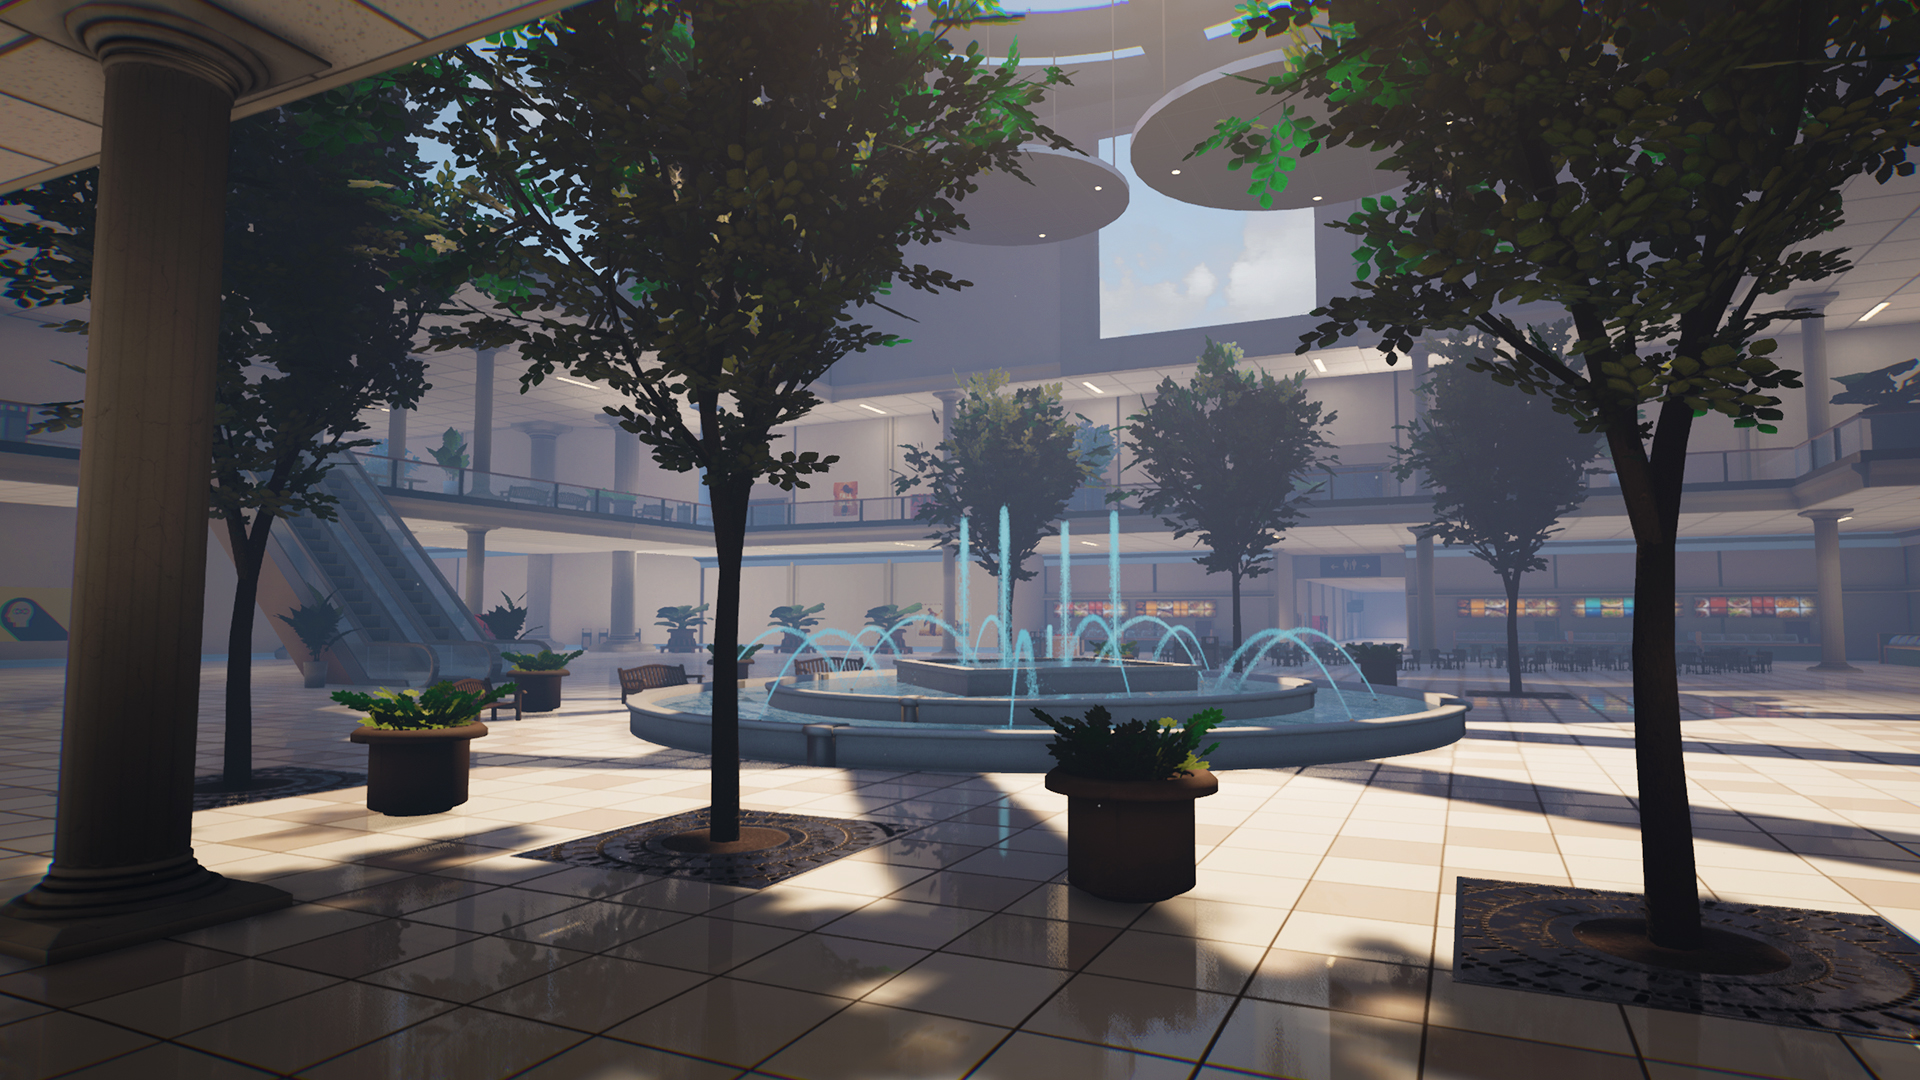 Central hub with midday lighting, looking at the fountain